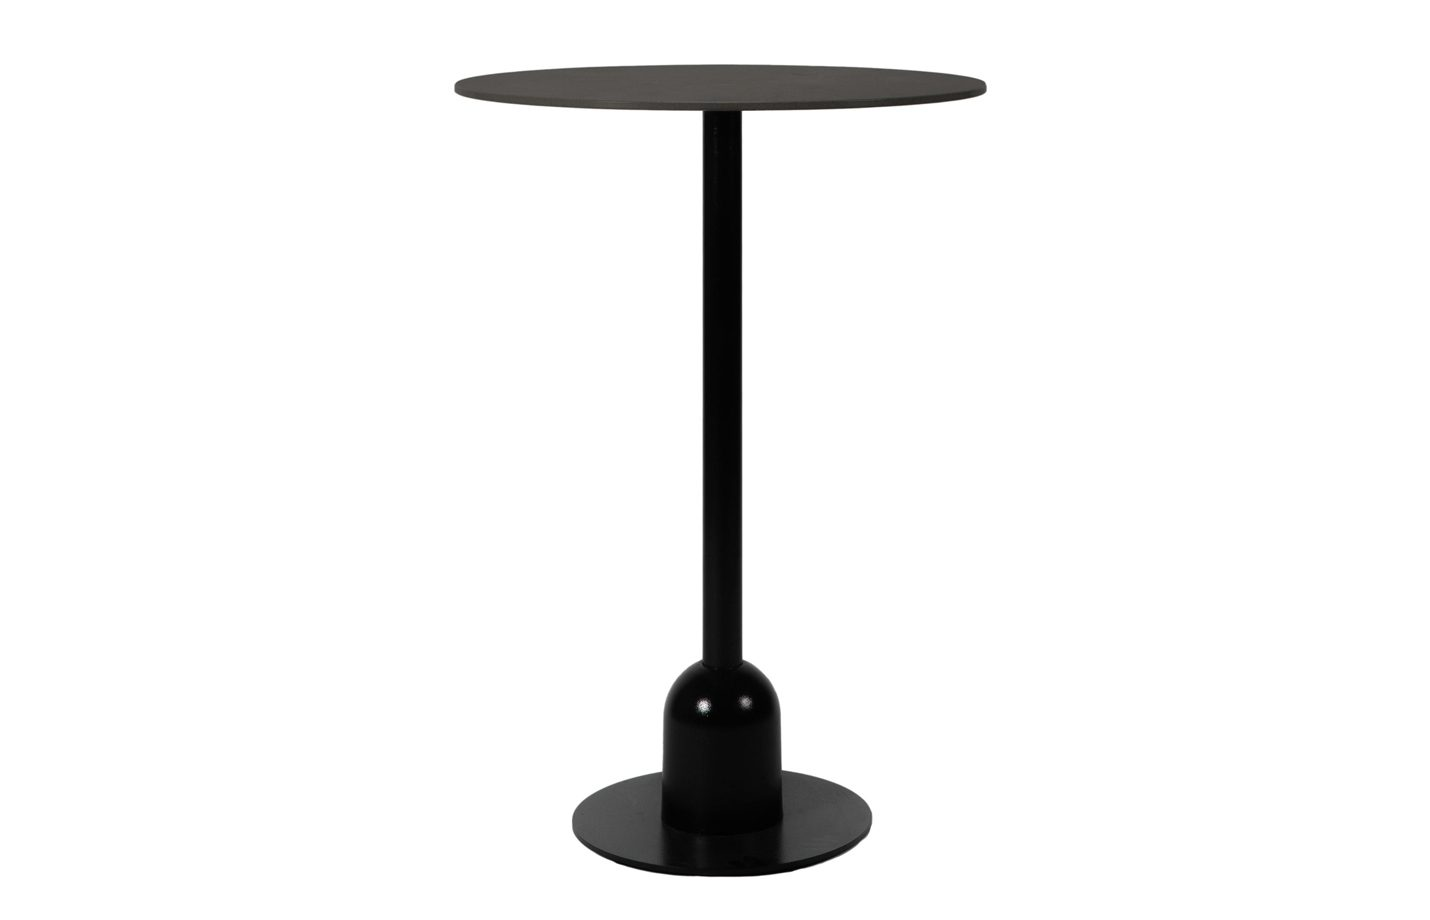 Charlie-bistro-dining-high-table-01